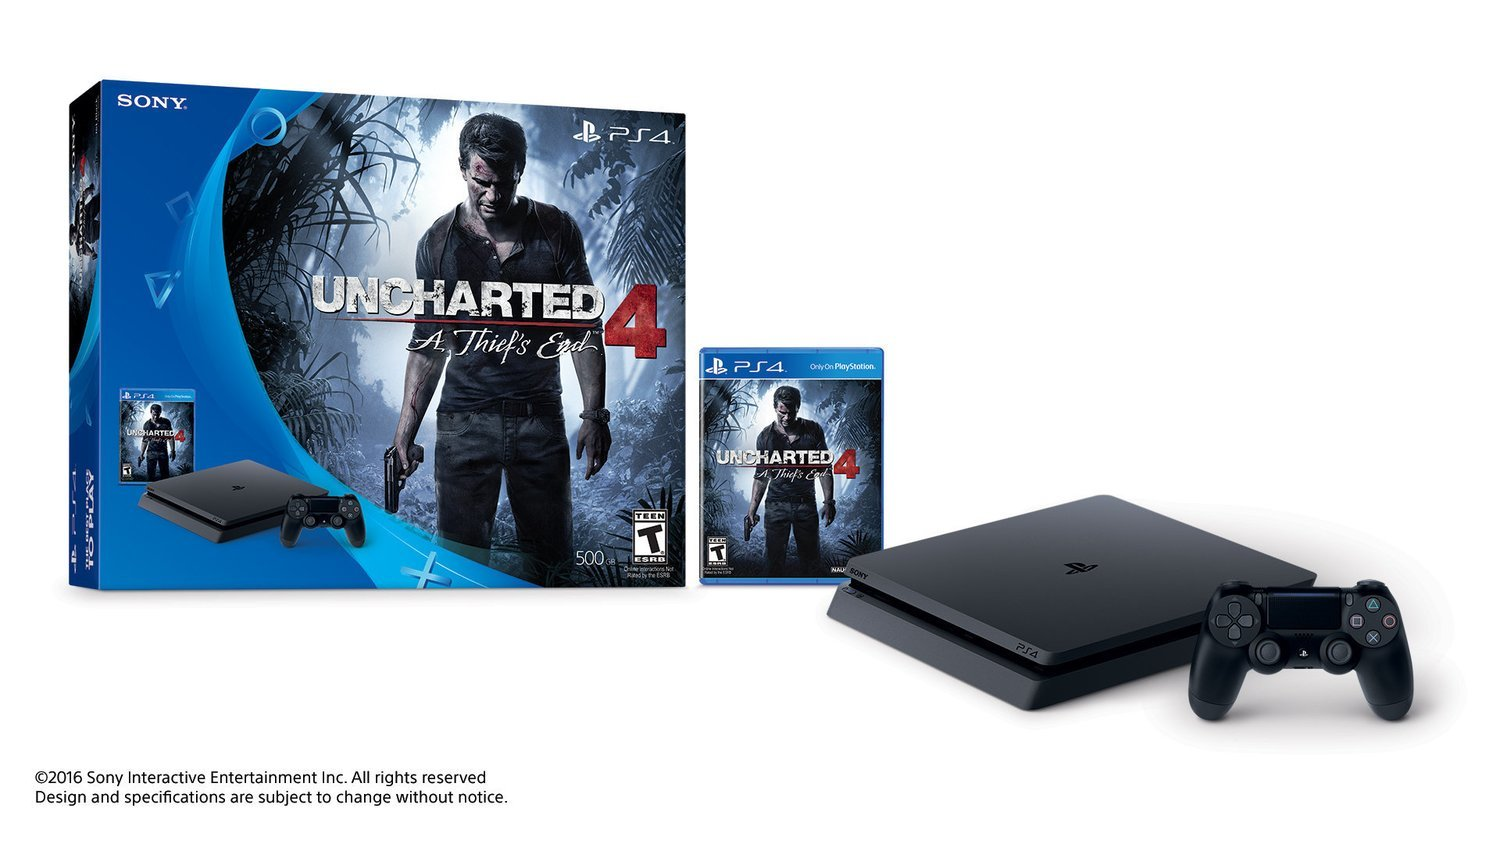 Playstation 4 slim 500gb Uncharted 4: A Thief's End